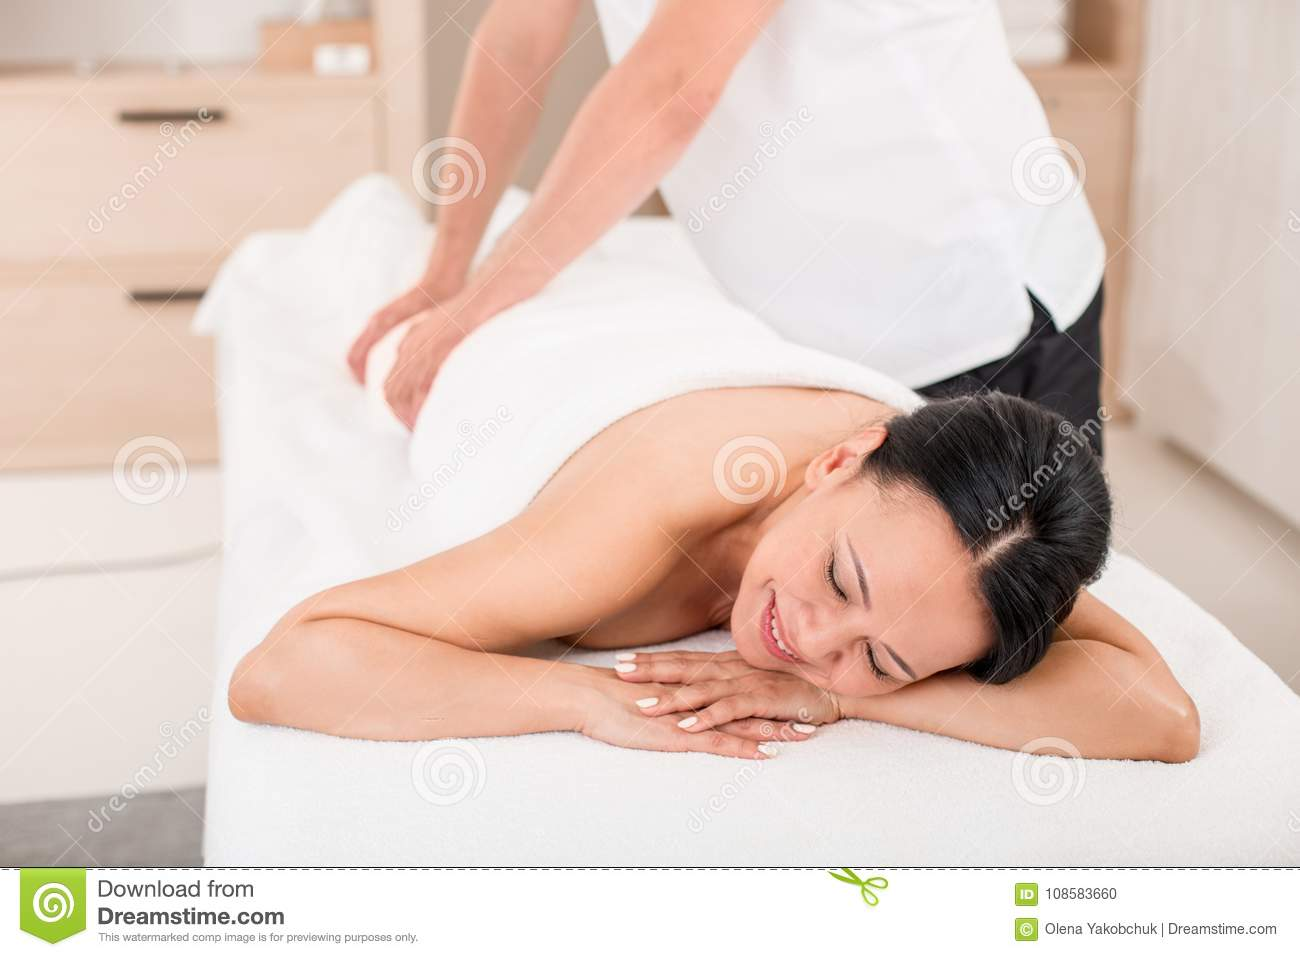 Mature women being massaged